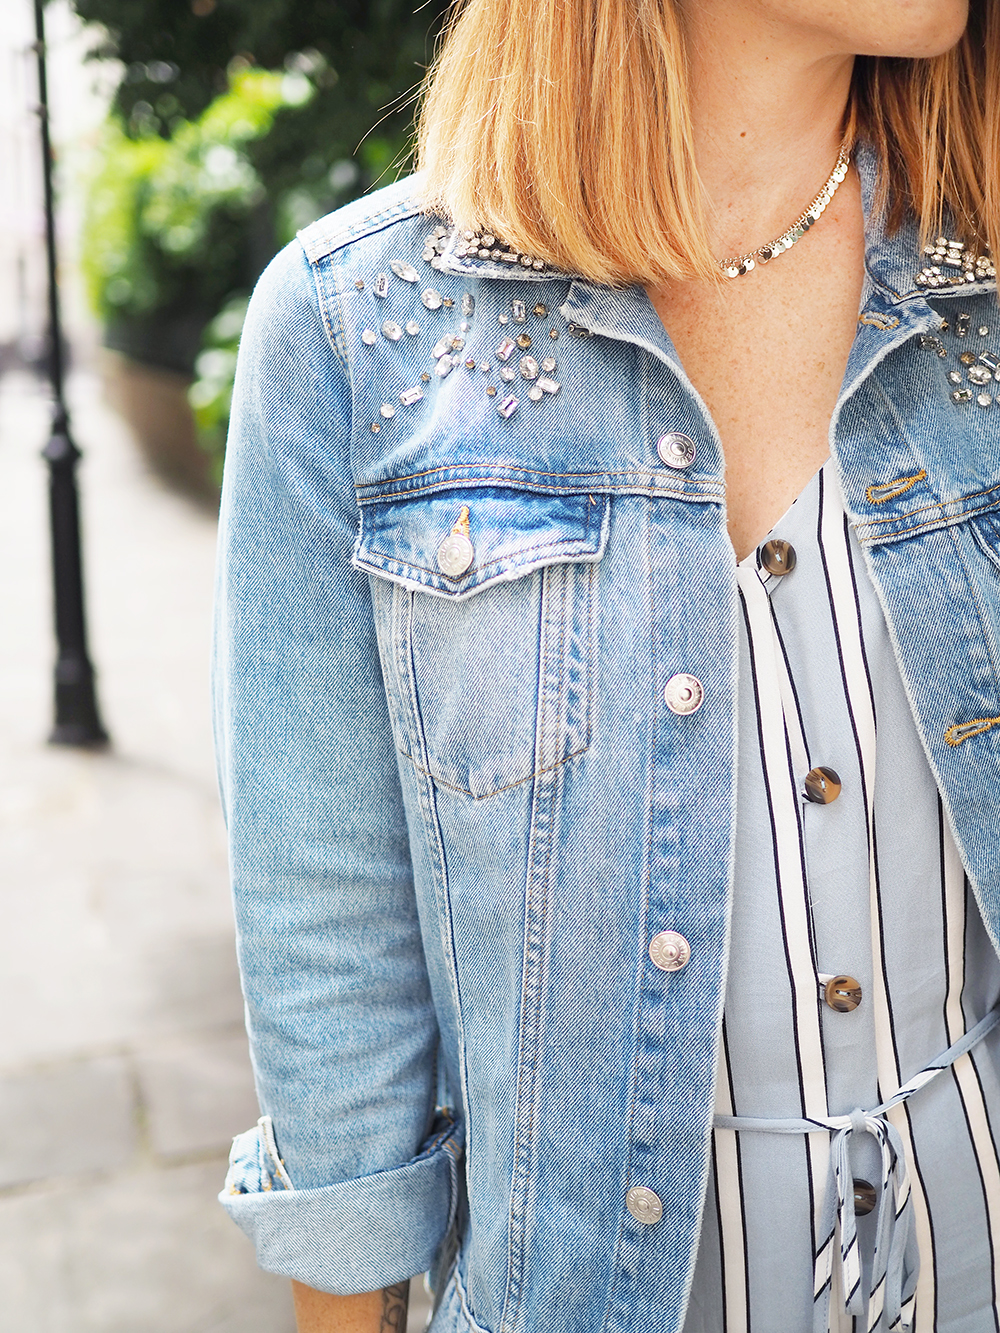 denim jacket with jewel embellishments